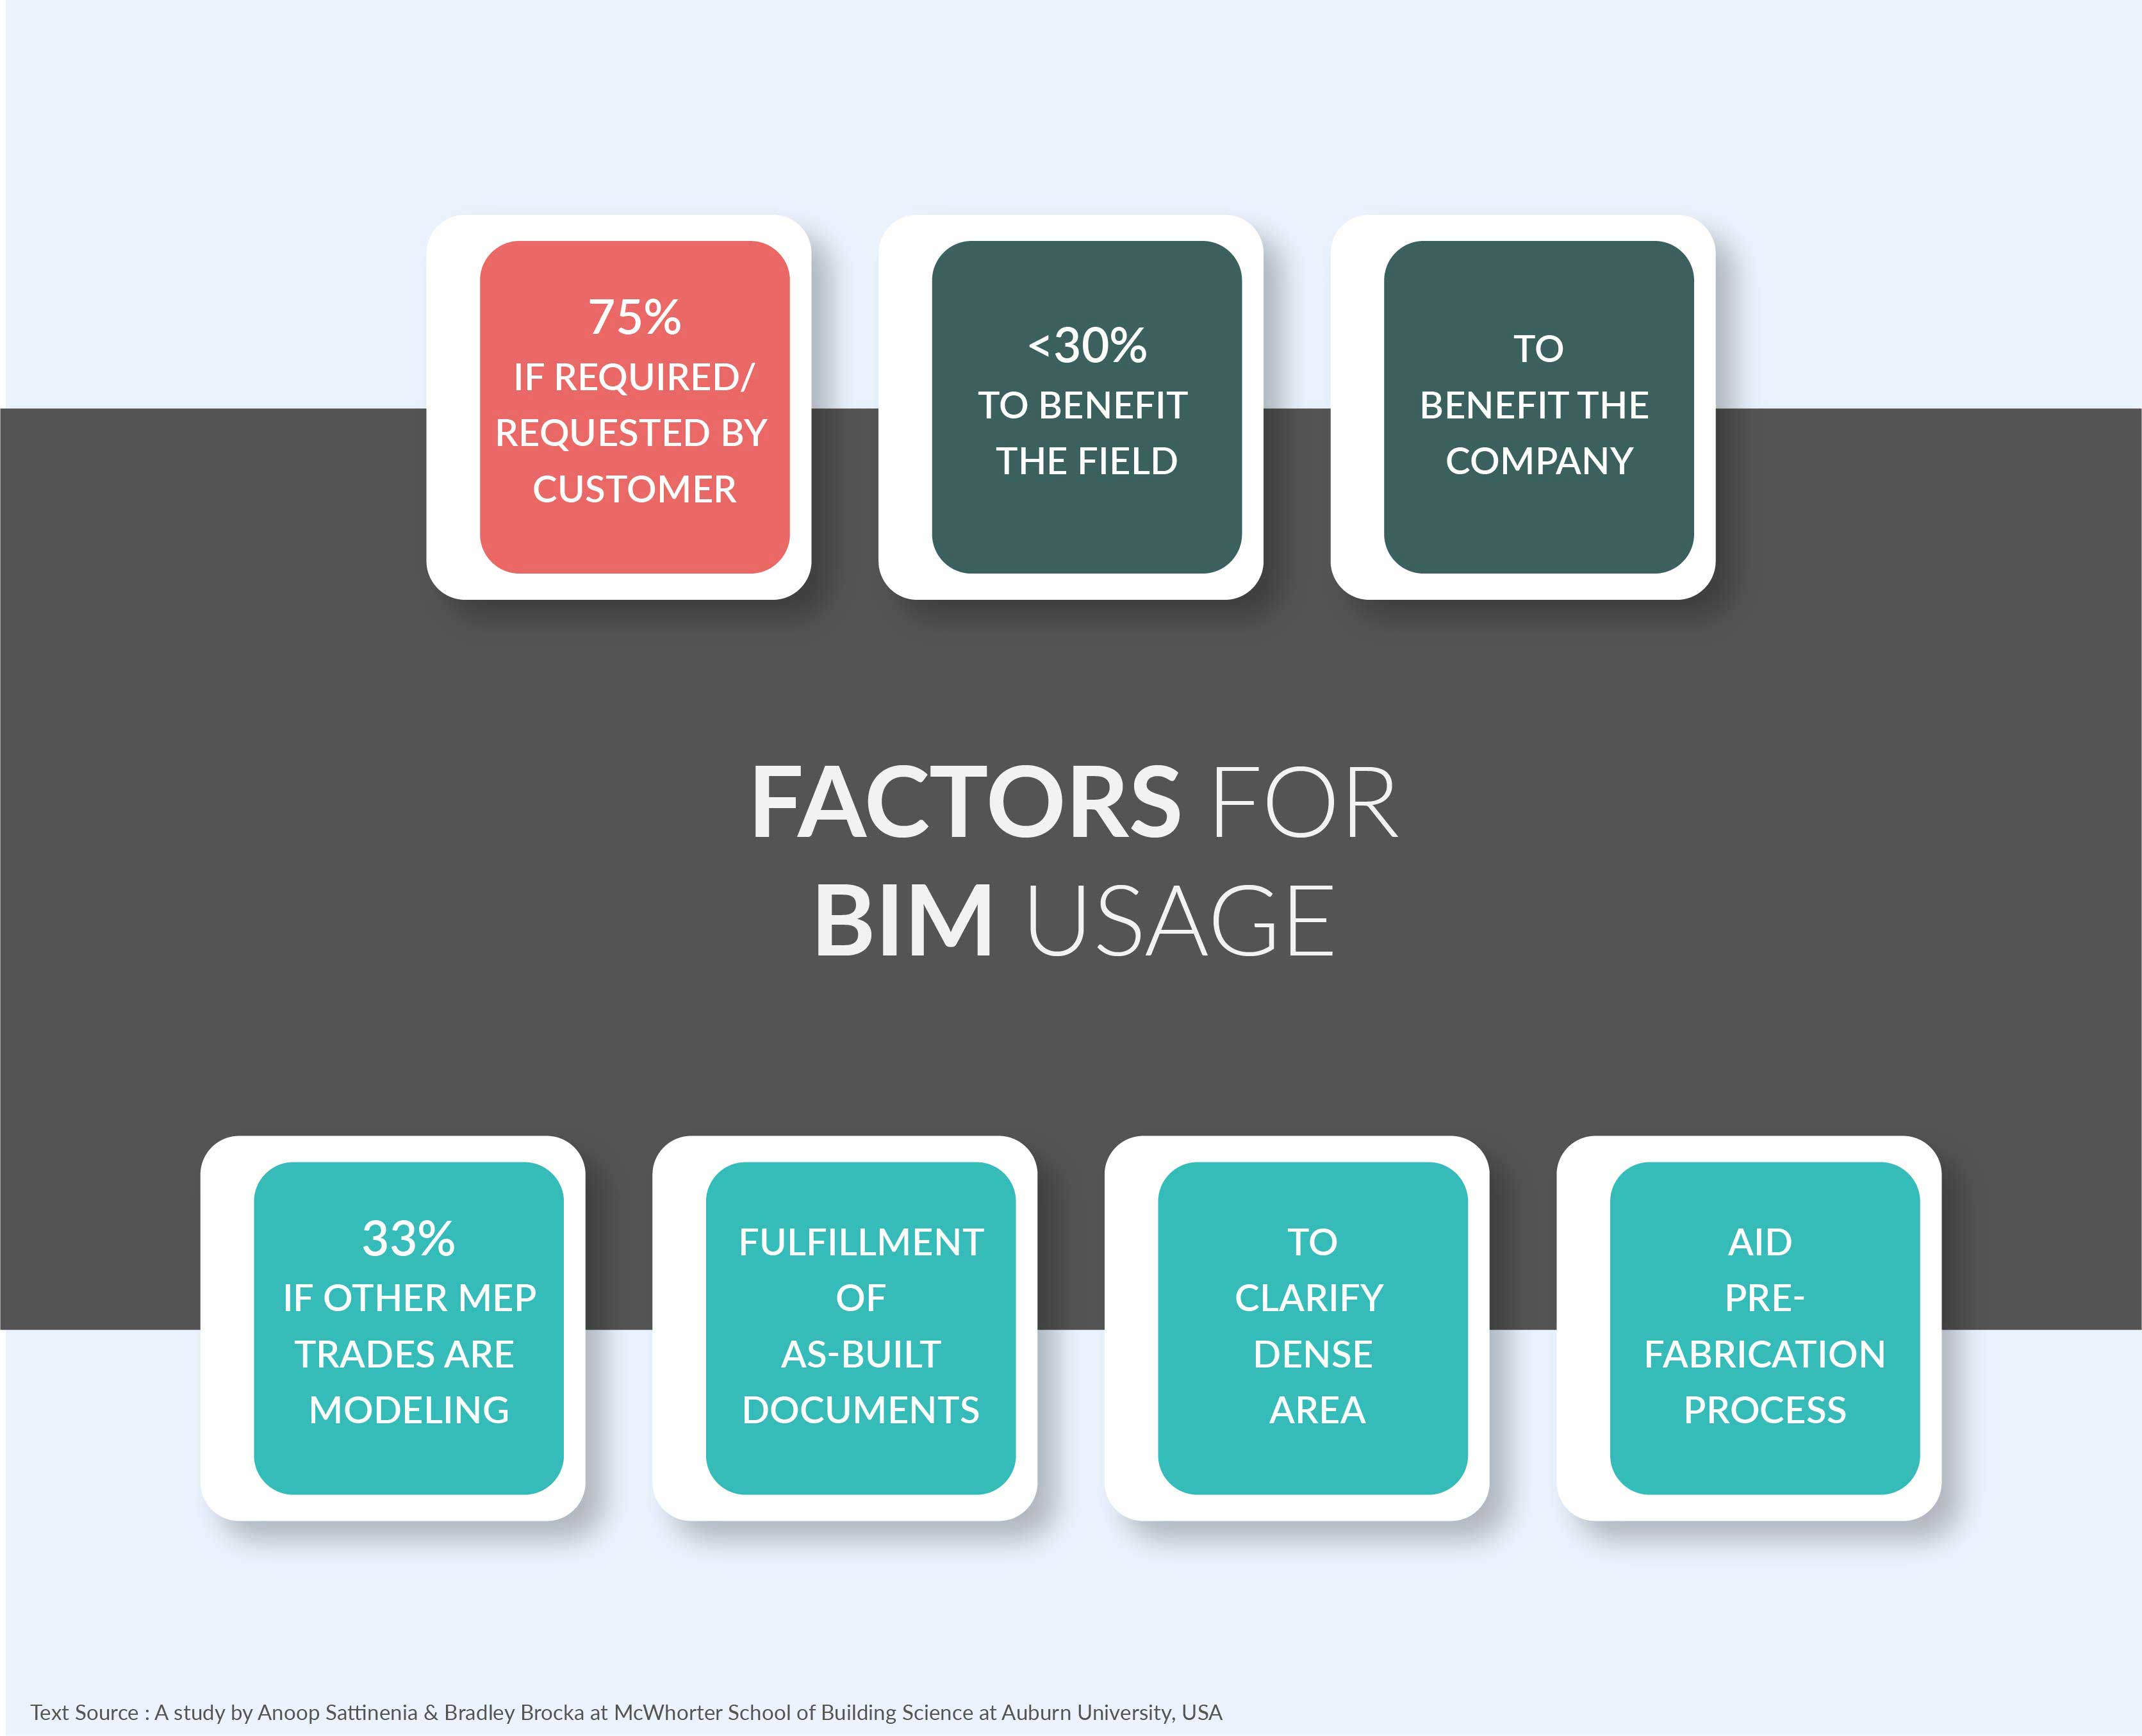 factors-for-bim-usage-by subcontractors_by_United-BIM